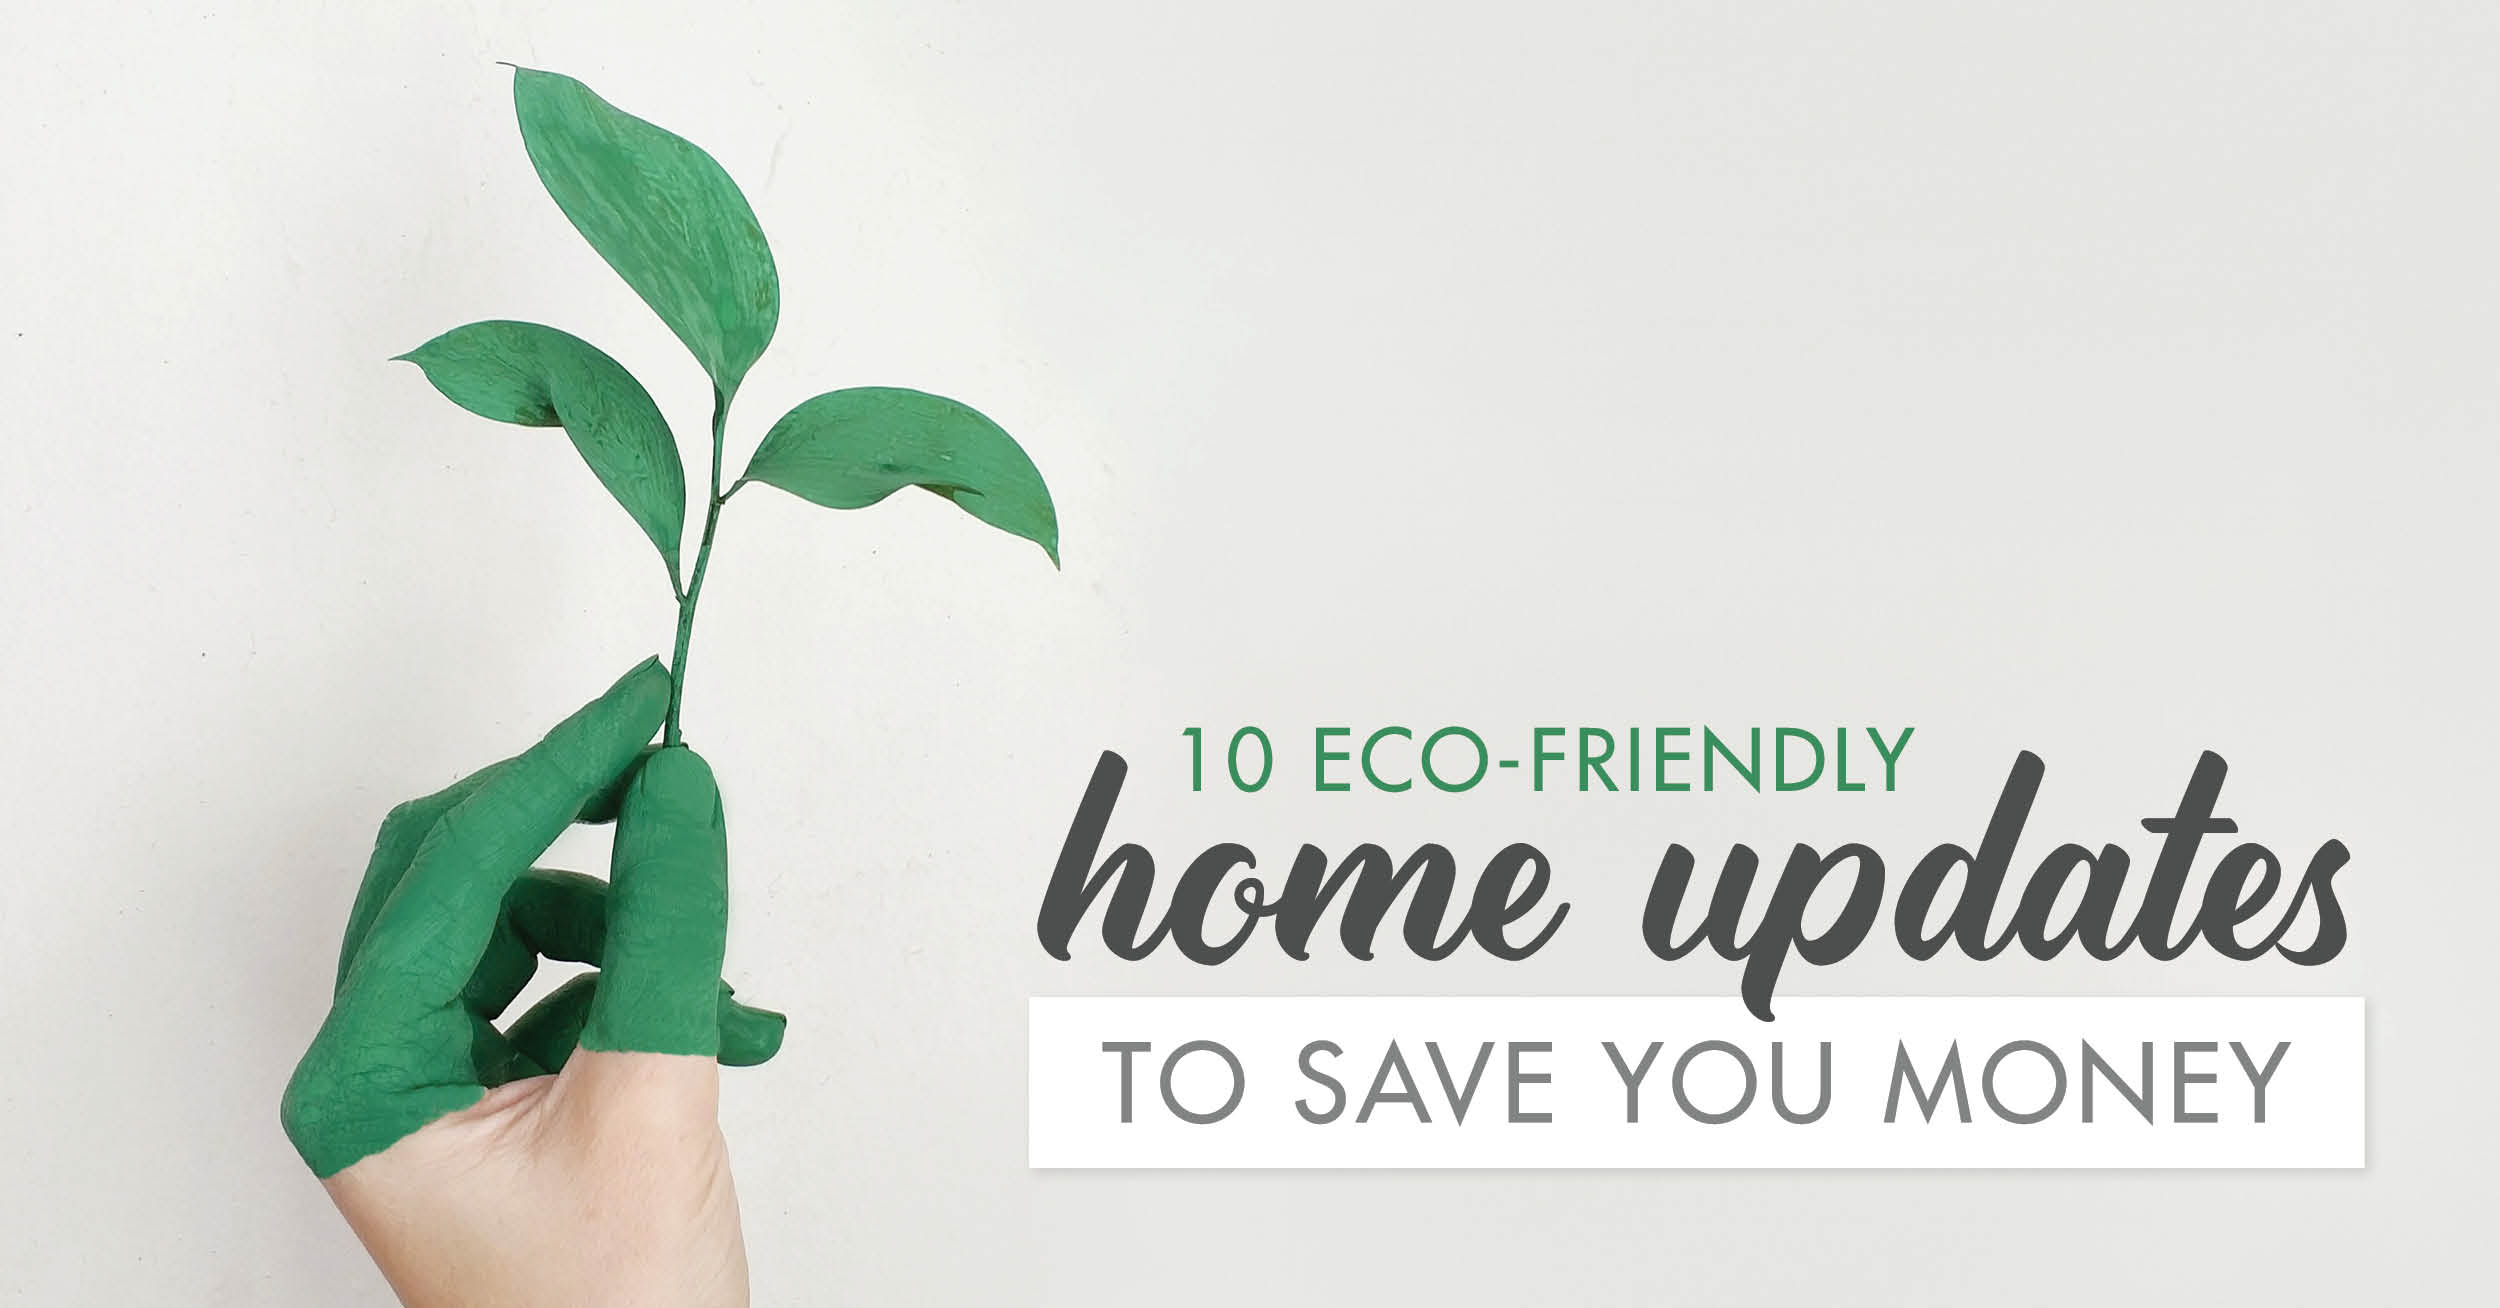 10 Eco-Friendly Home Updates To Save You Money